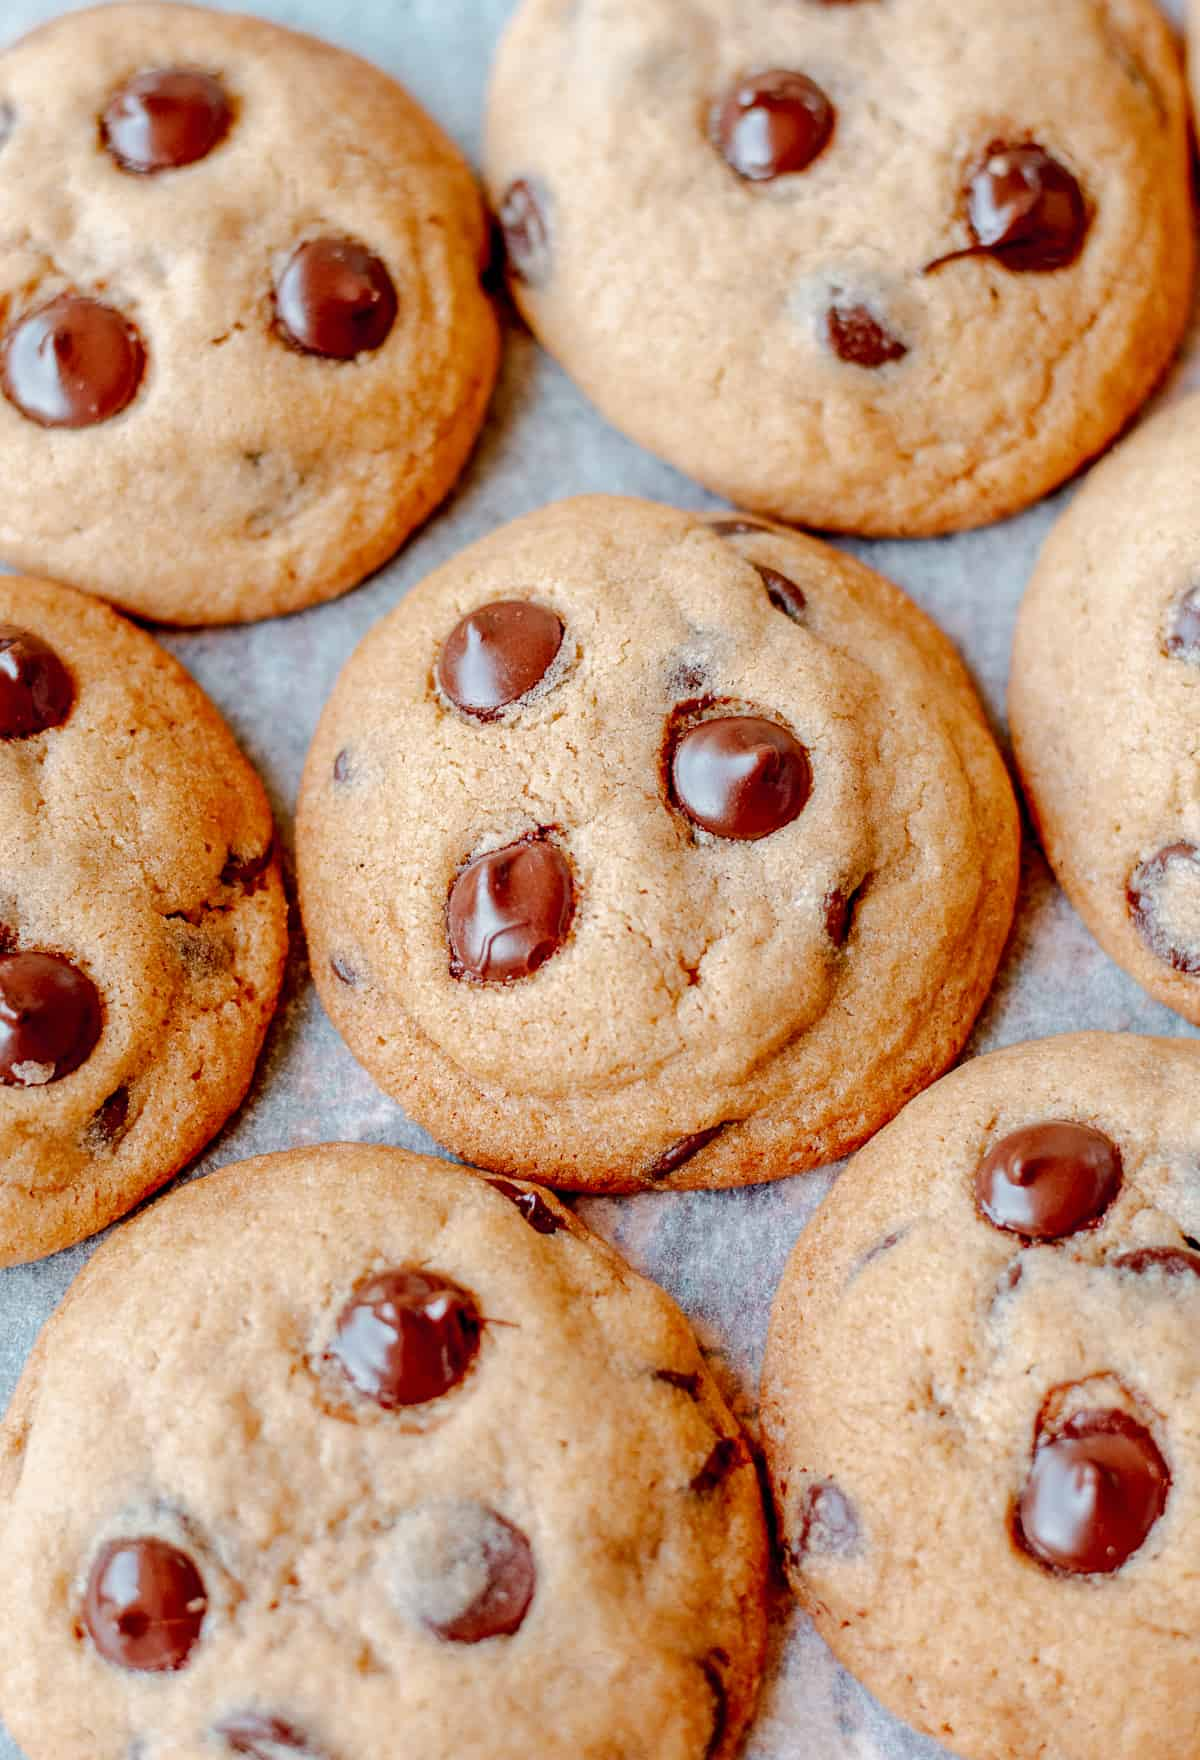 Chocolate Chips Cookies on baking sheet.